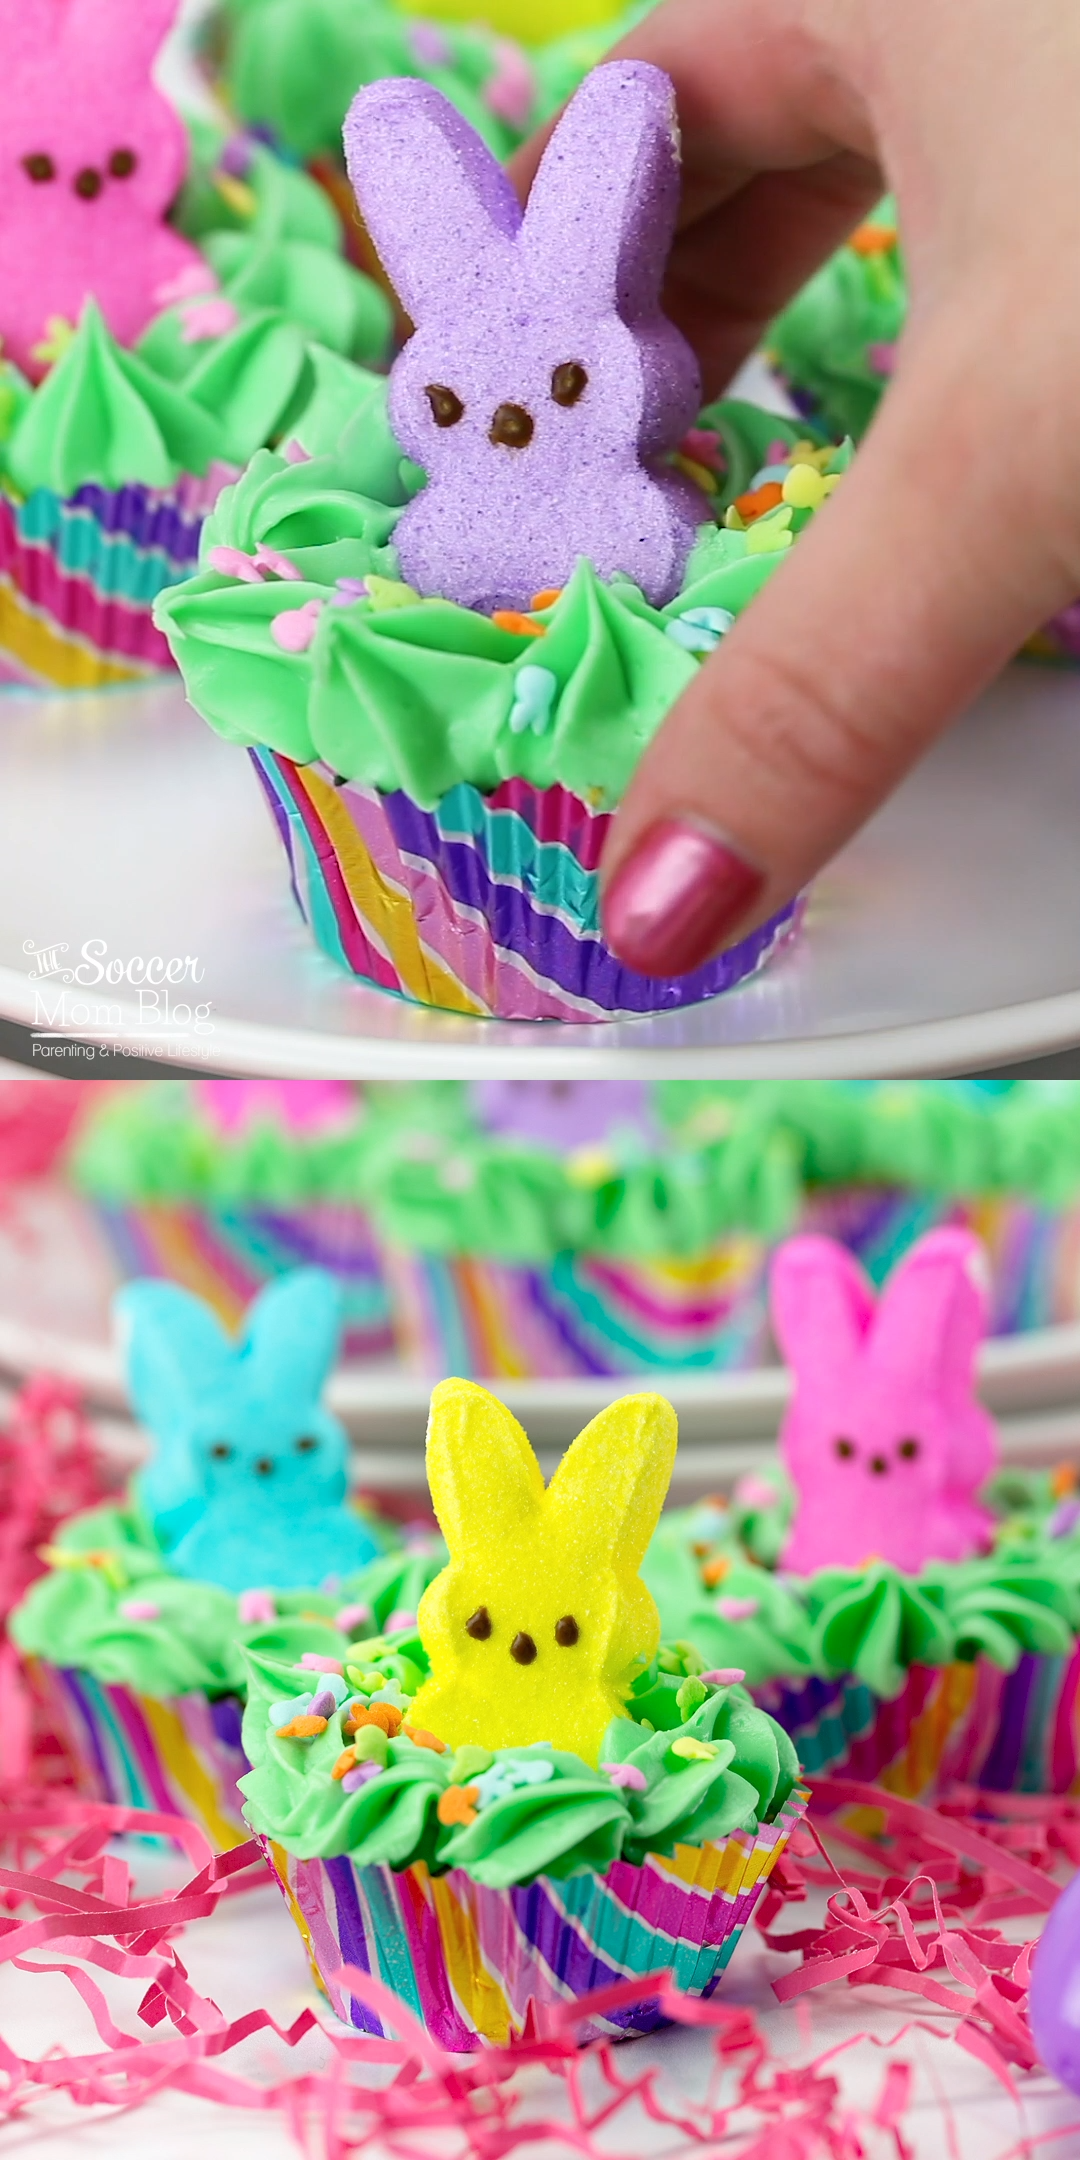 PEEPS Bunny Cupcakes - Easter bunny cupcakes, Easter cupcakes, Bunny cupcakes, Easter bunny cake, Easter sweets, Easter treats - Easy recipe for cute and colorful Easter Bunny Cupcakes made with Peeps!